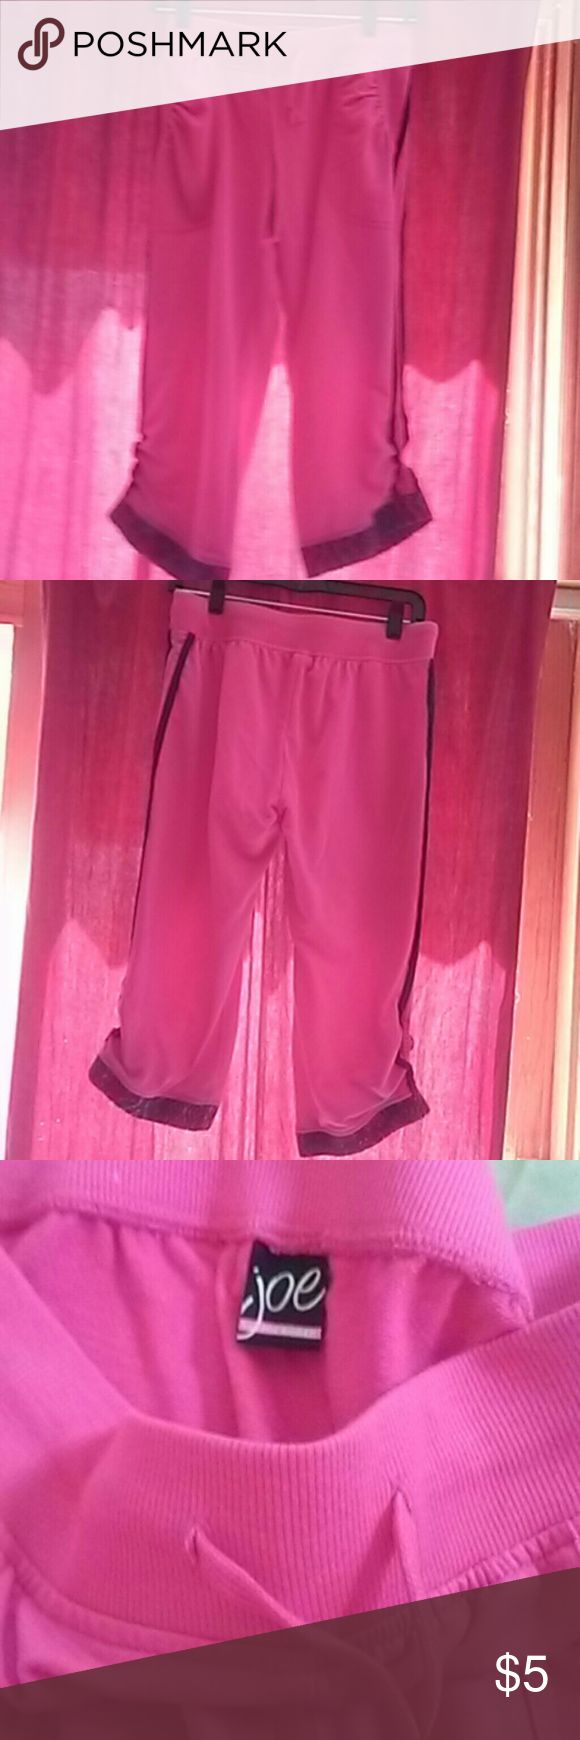 Joe boxers capris Pink with blue on outside of legs and bottom of legs (see photos) elastic waist with pull  string also pockets in front never worn excellent condition Joe boxers  Pants Capris